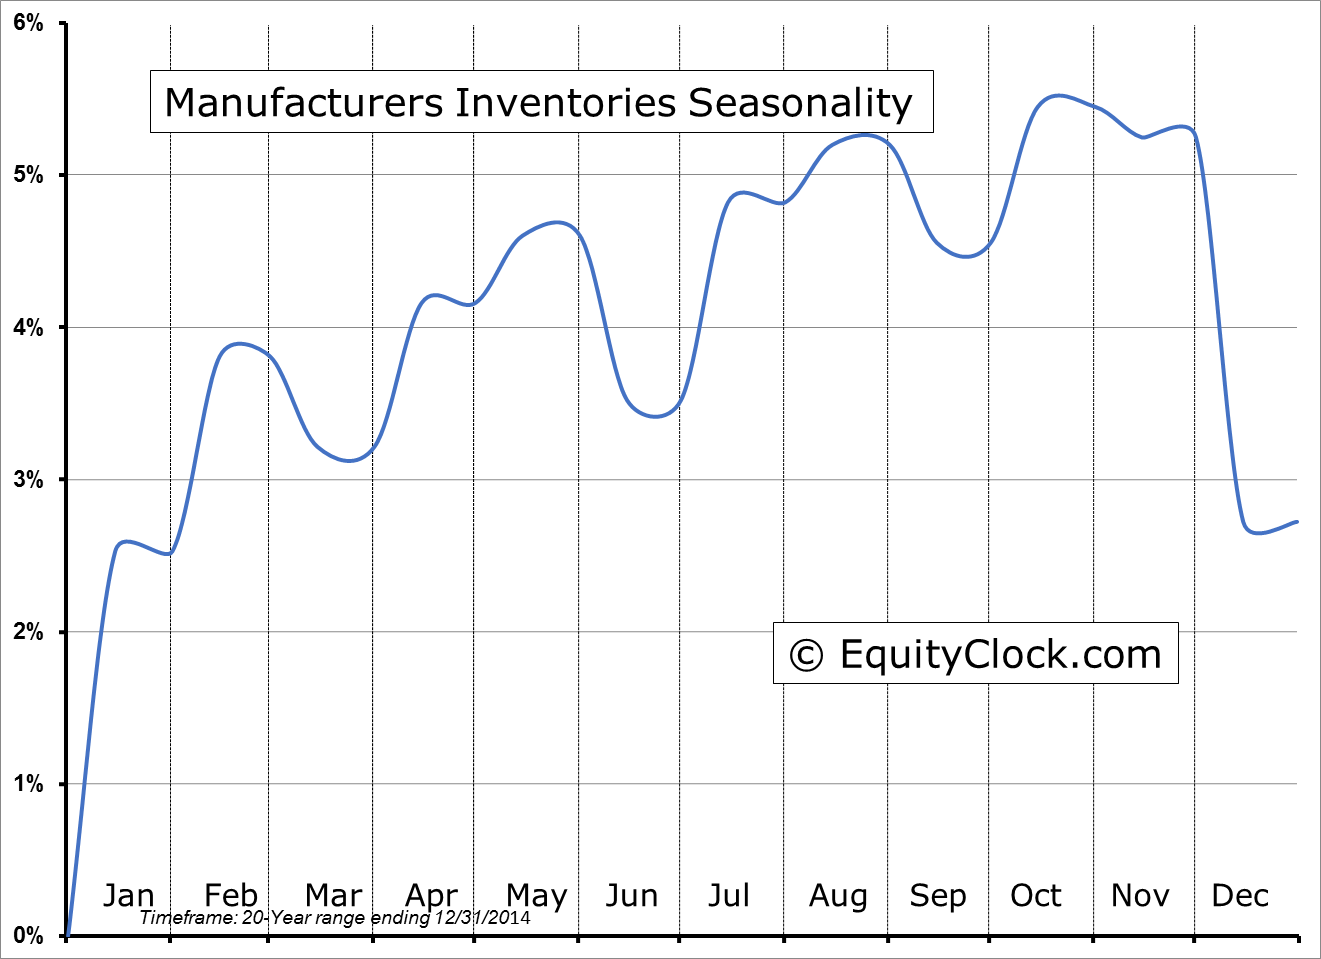 Manufacturers Inventories Seasonality